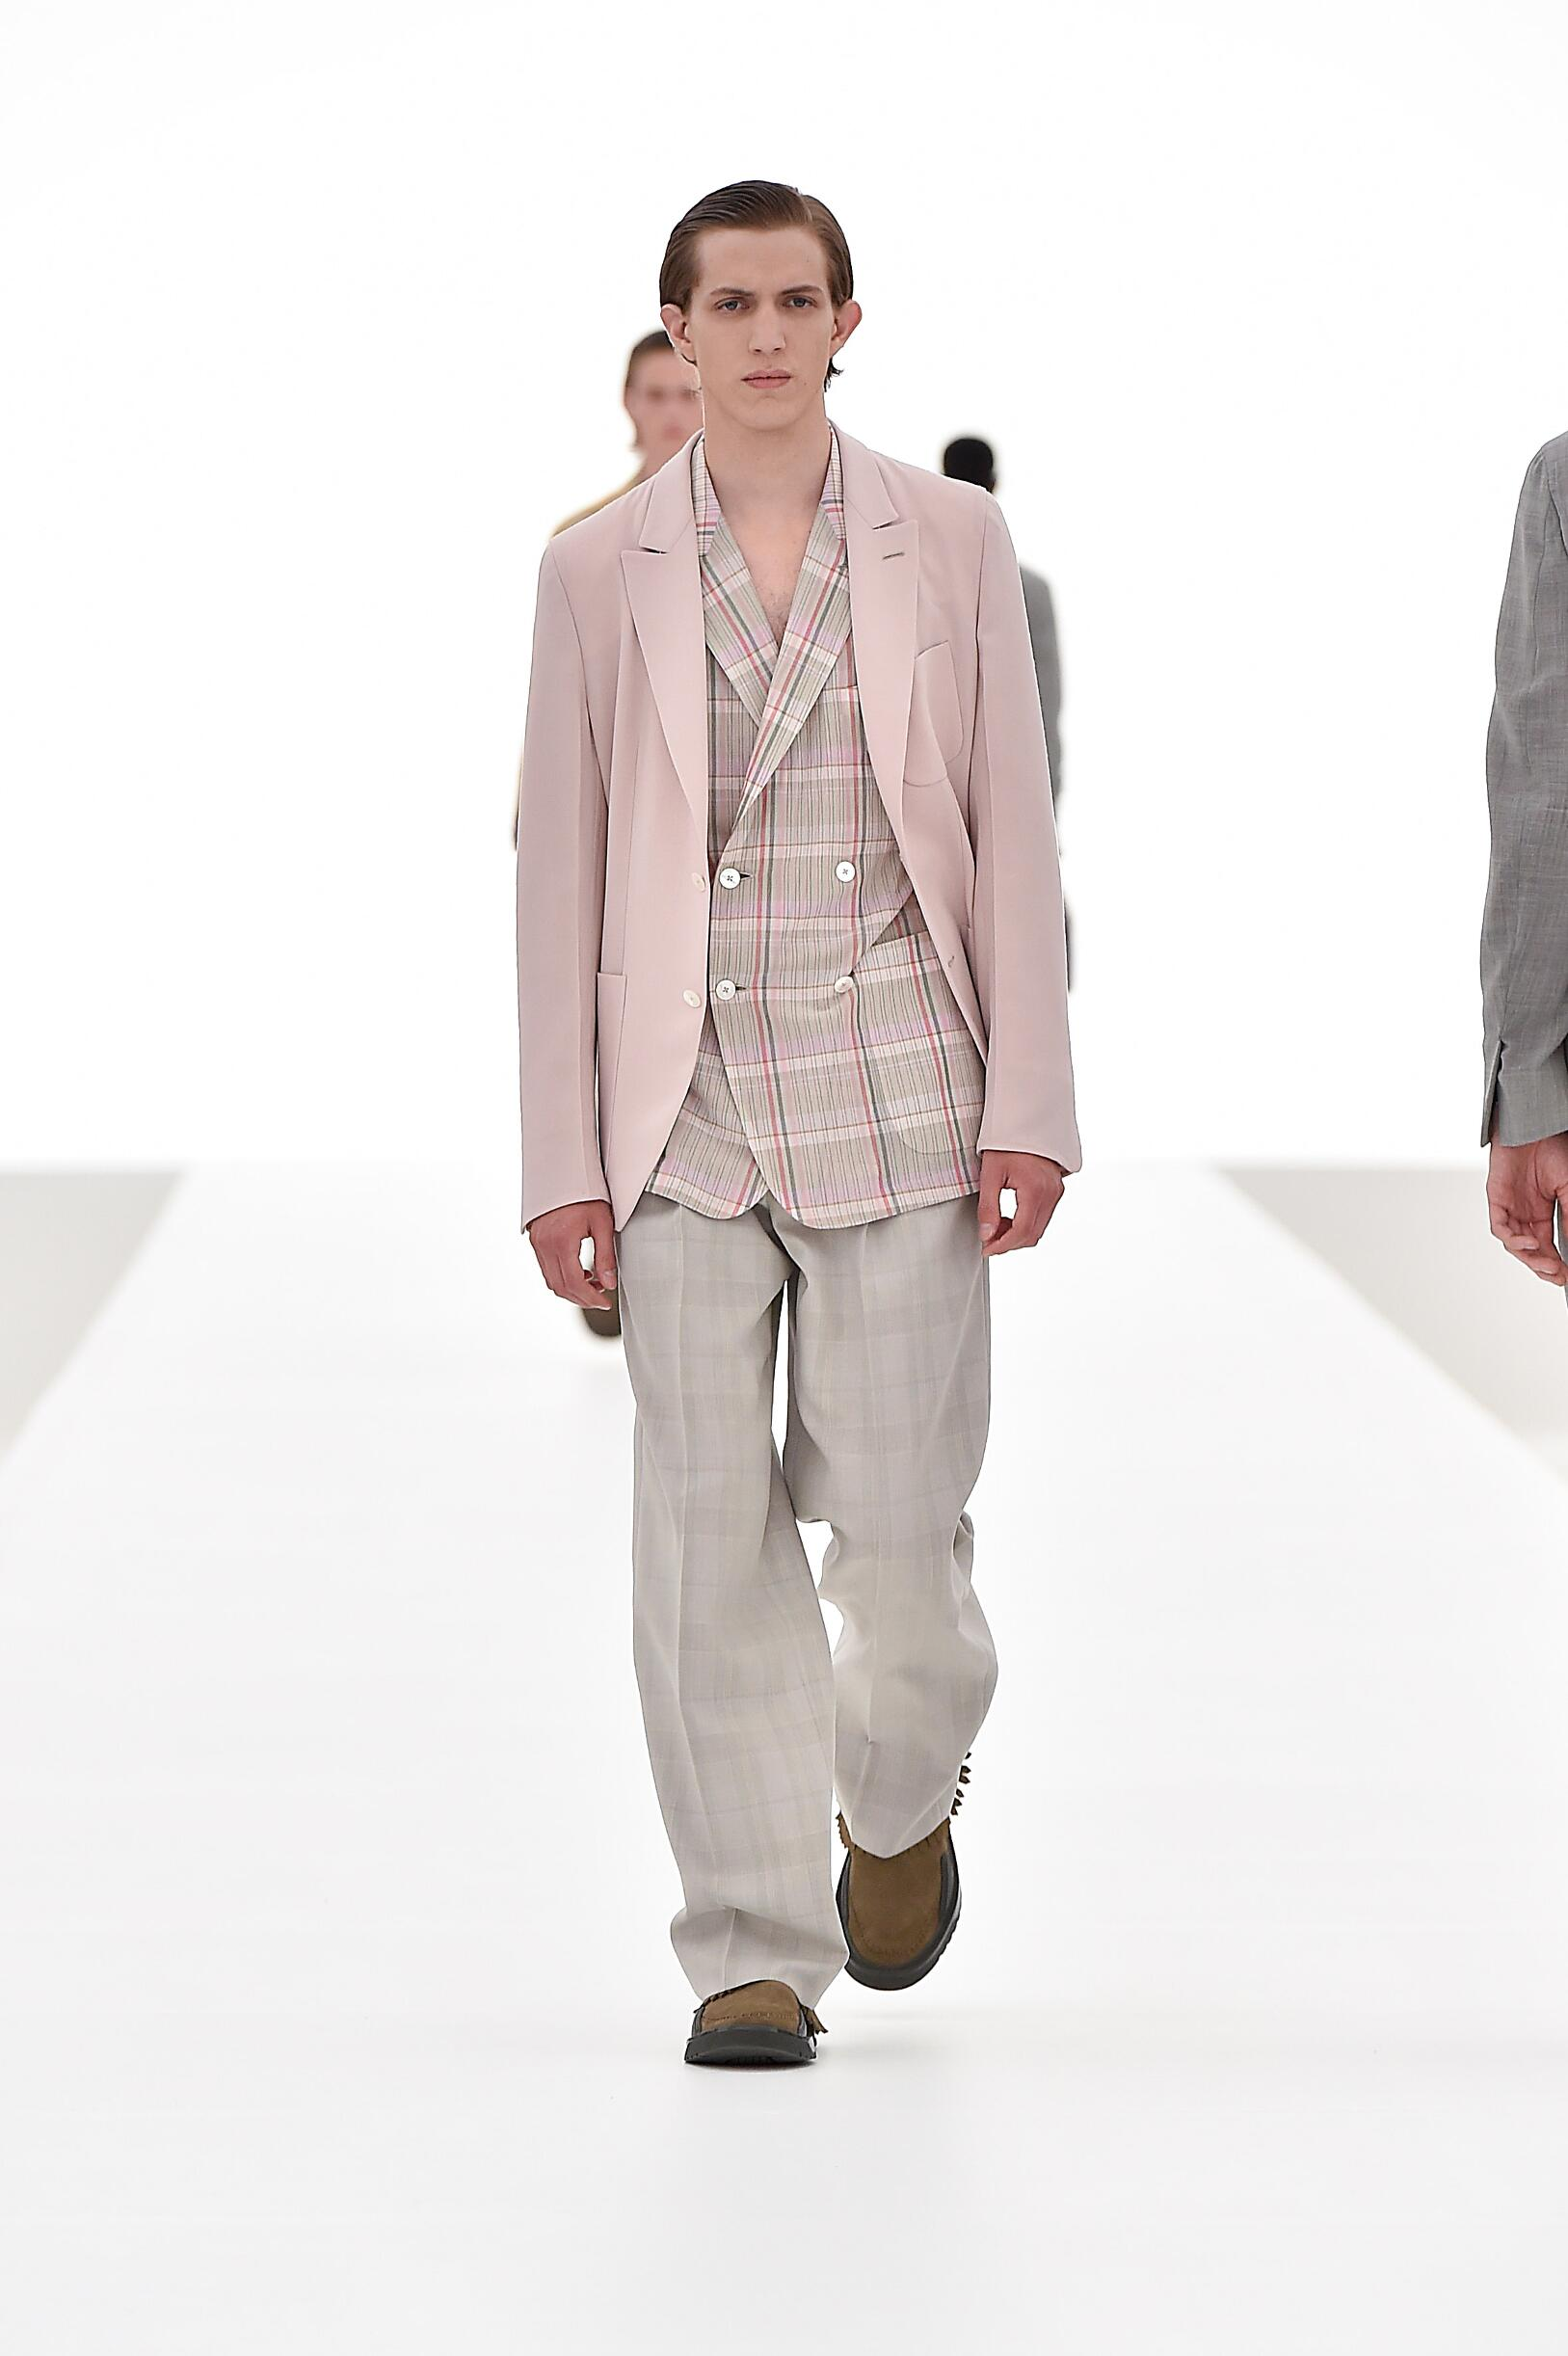 2016 Fashion Man Model Ermenegildo Zegna Couture Collection Catwalk